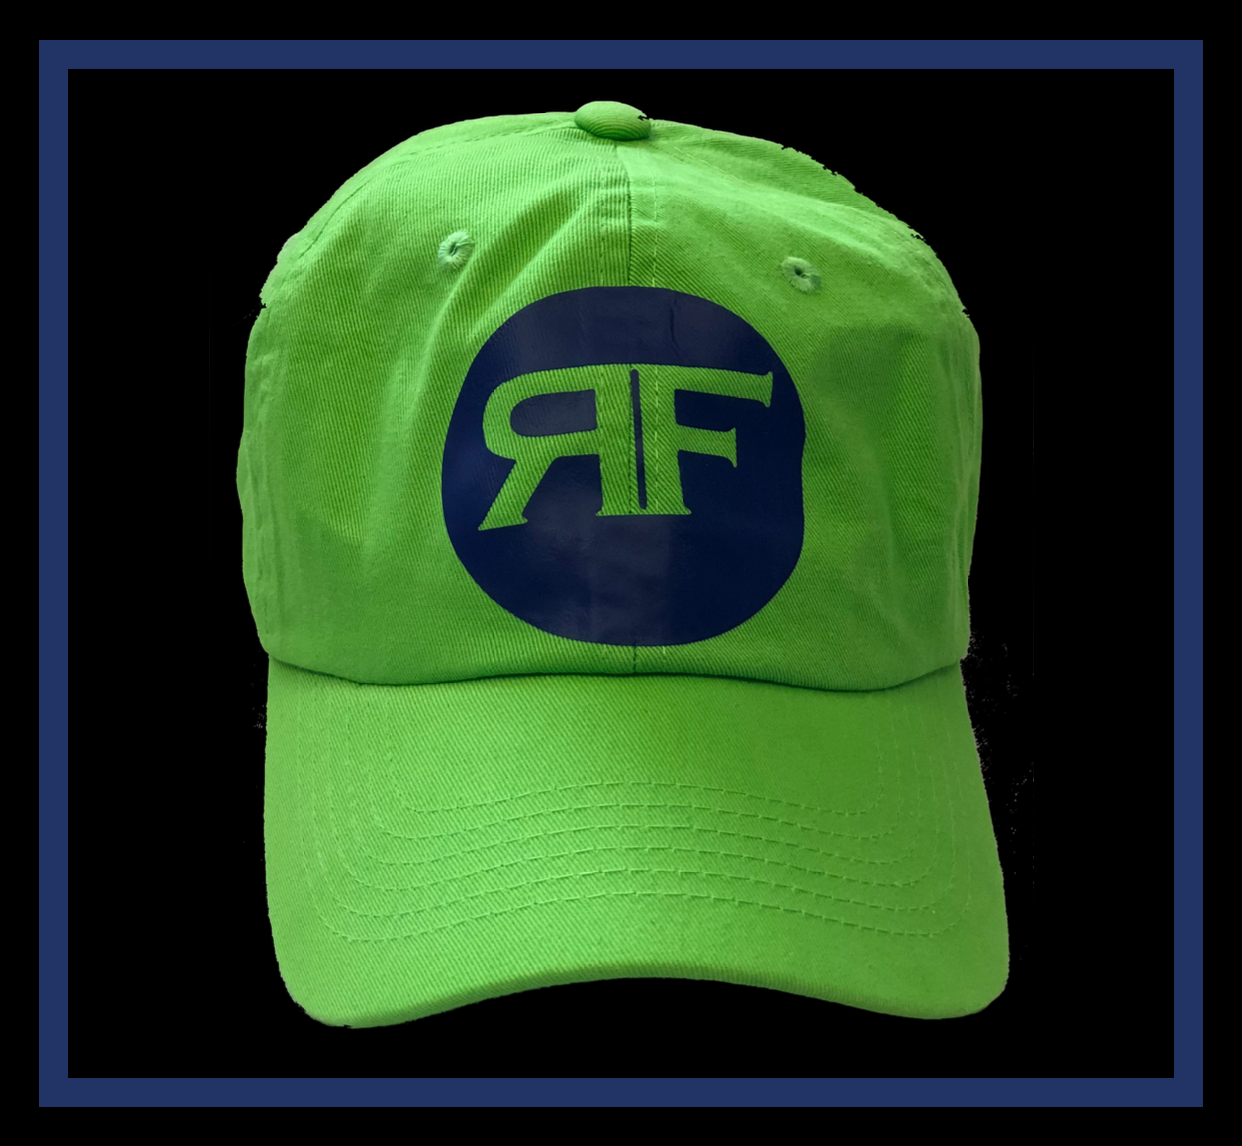 Rich Slime Green dad cap